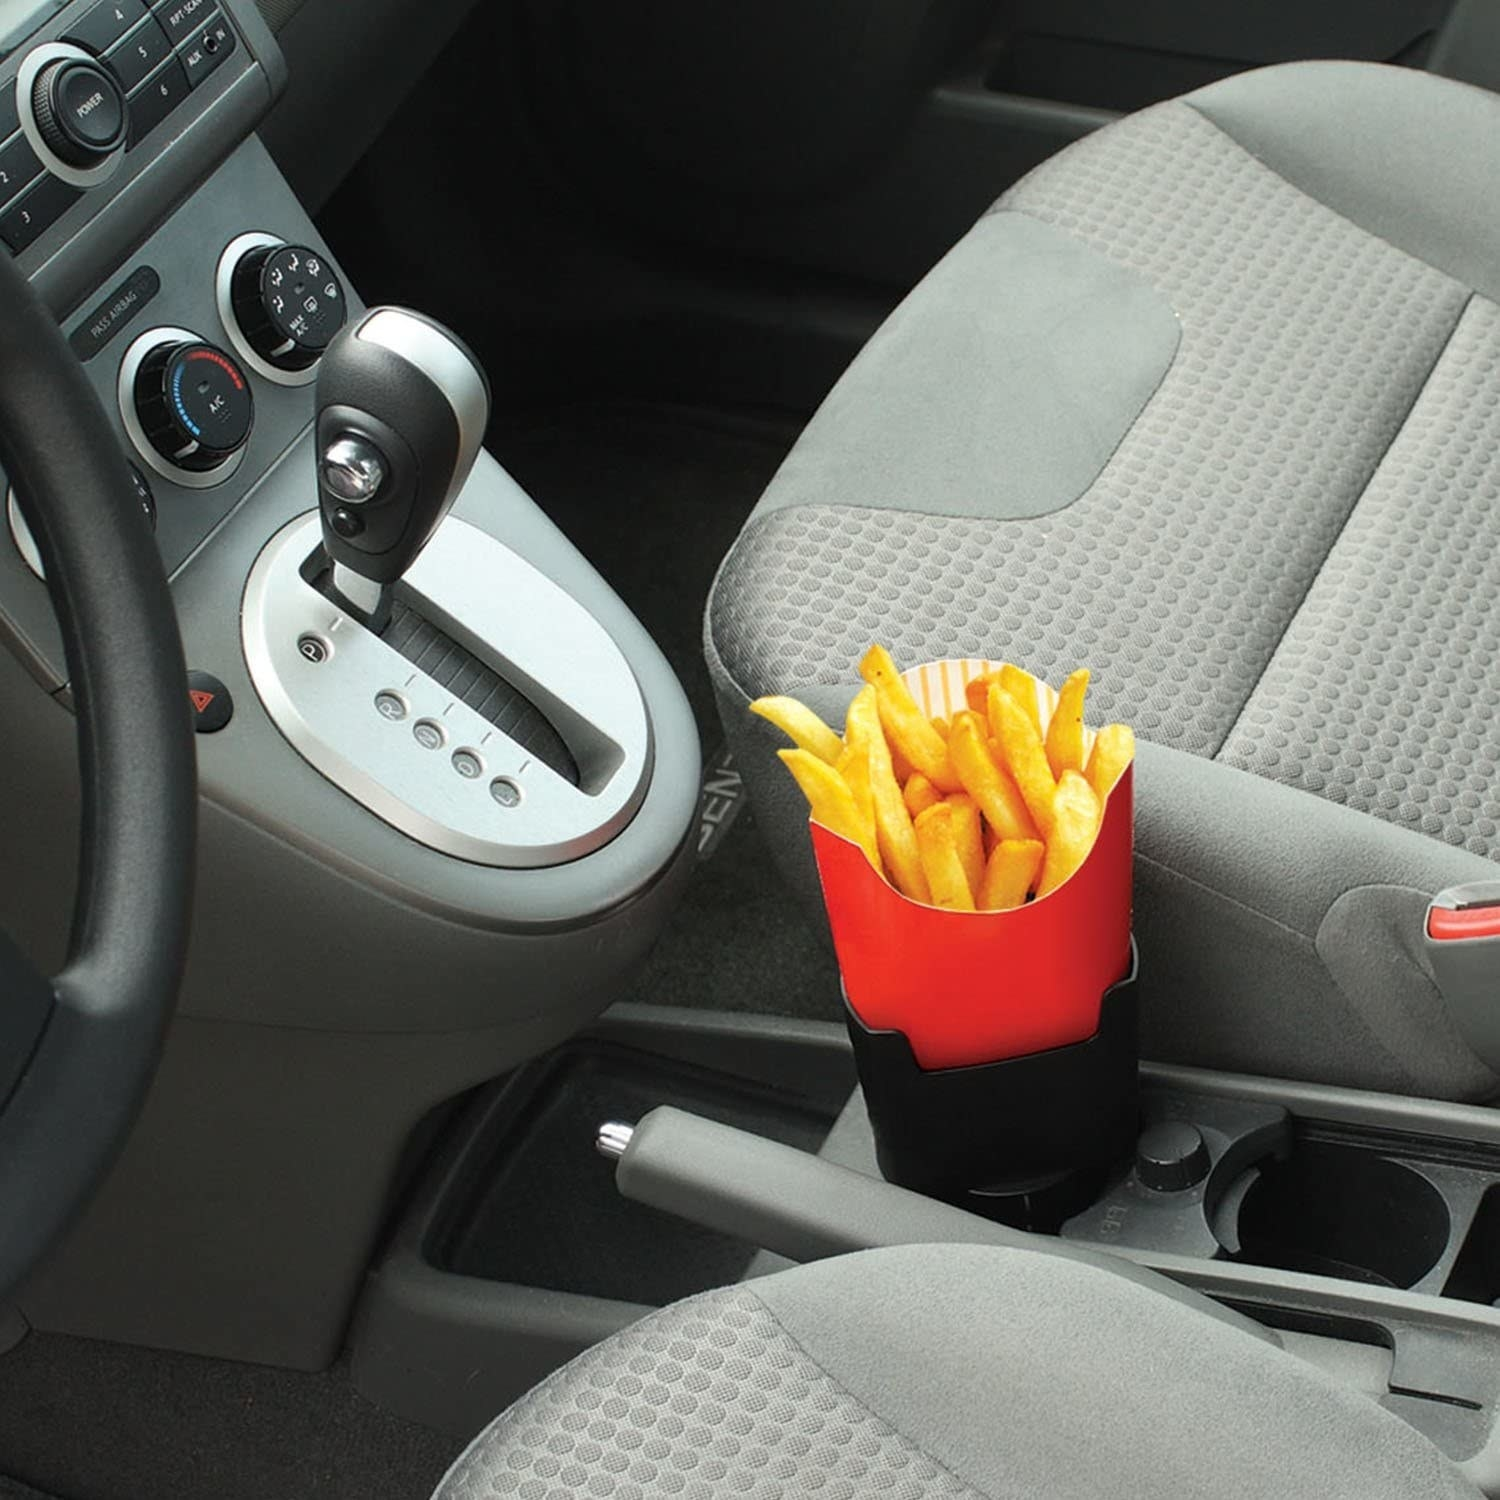 French fries stand upright in a holder fitted into a car's drink holder